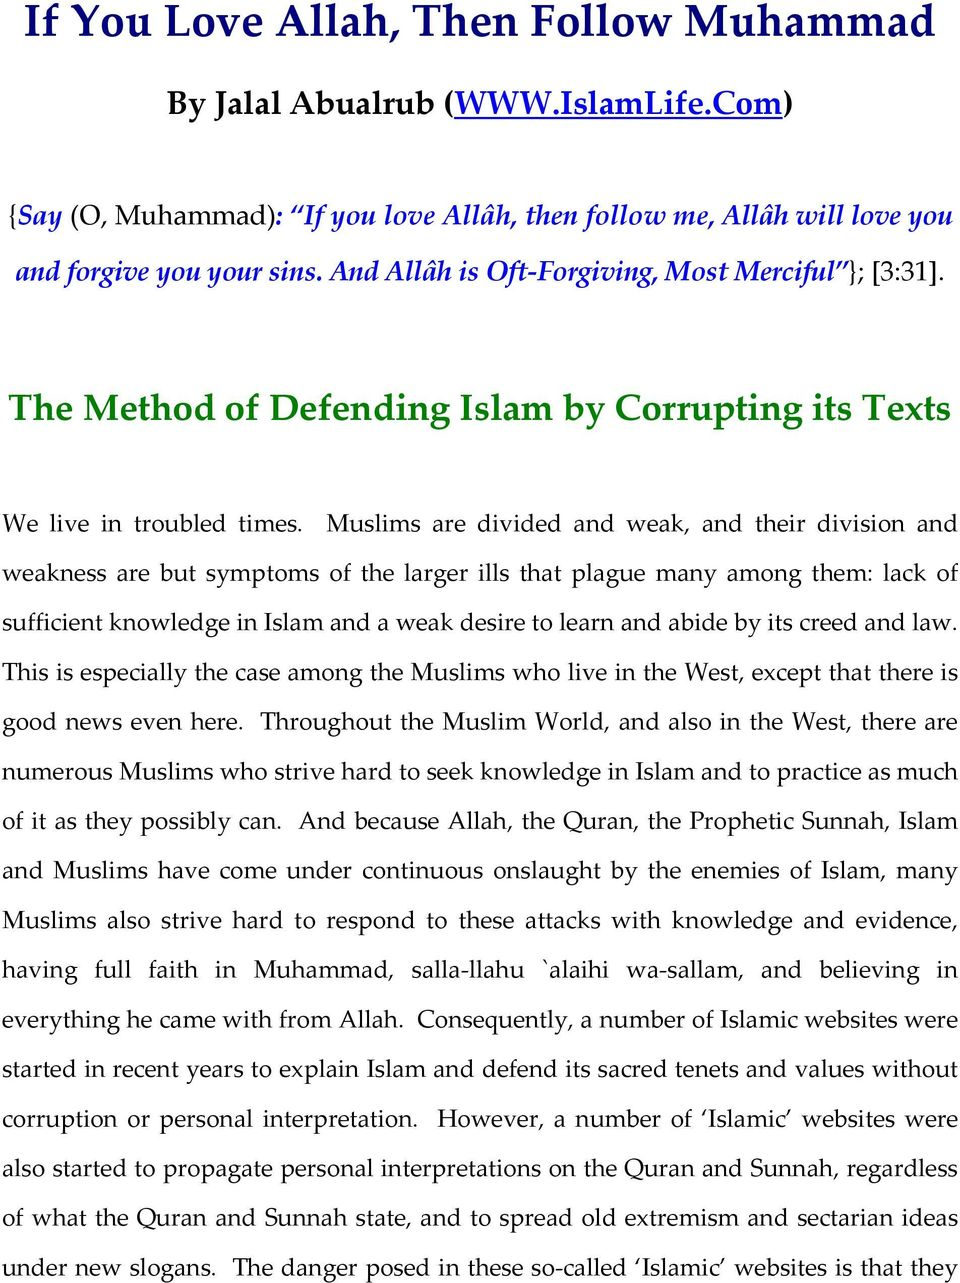 Muslims are divided and weak, and their division and weakness are but symptoms of the larger ills that plague many among them: lack of sufficient knowledge in Islam and a weak desire to learn and